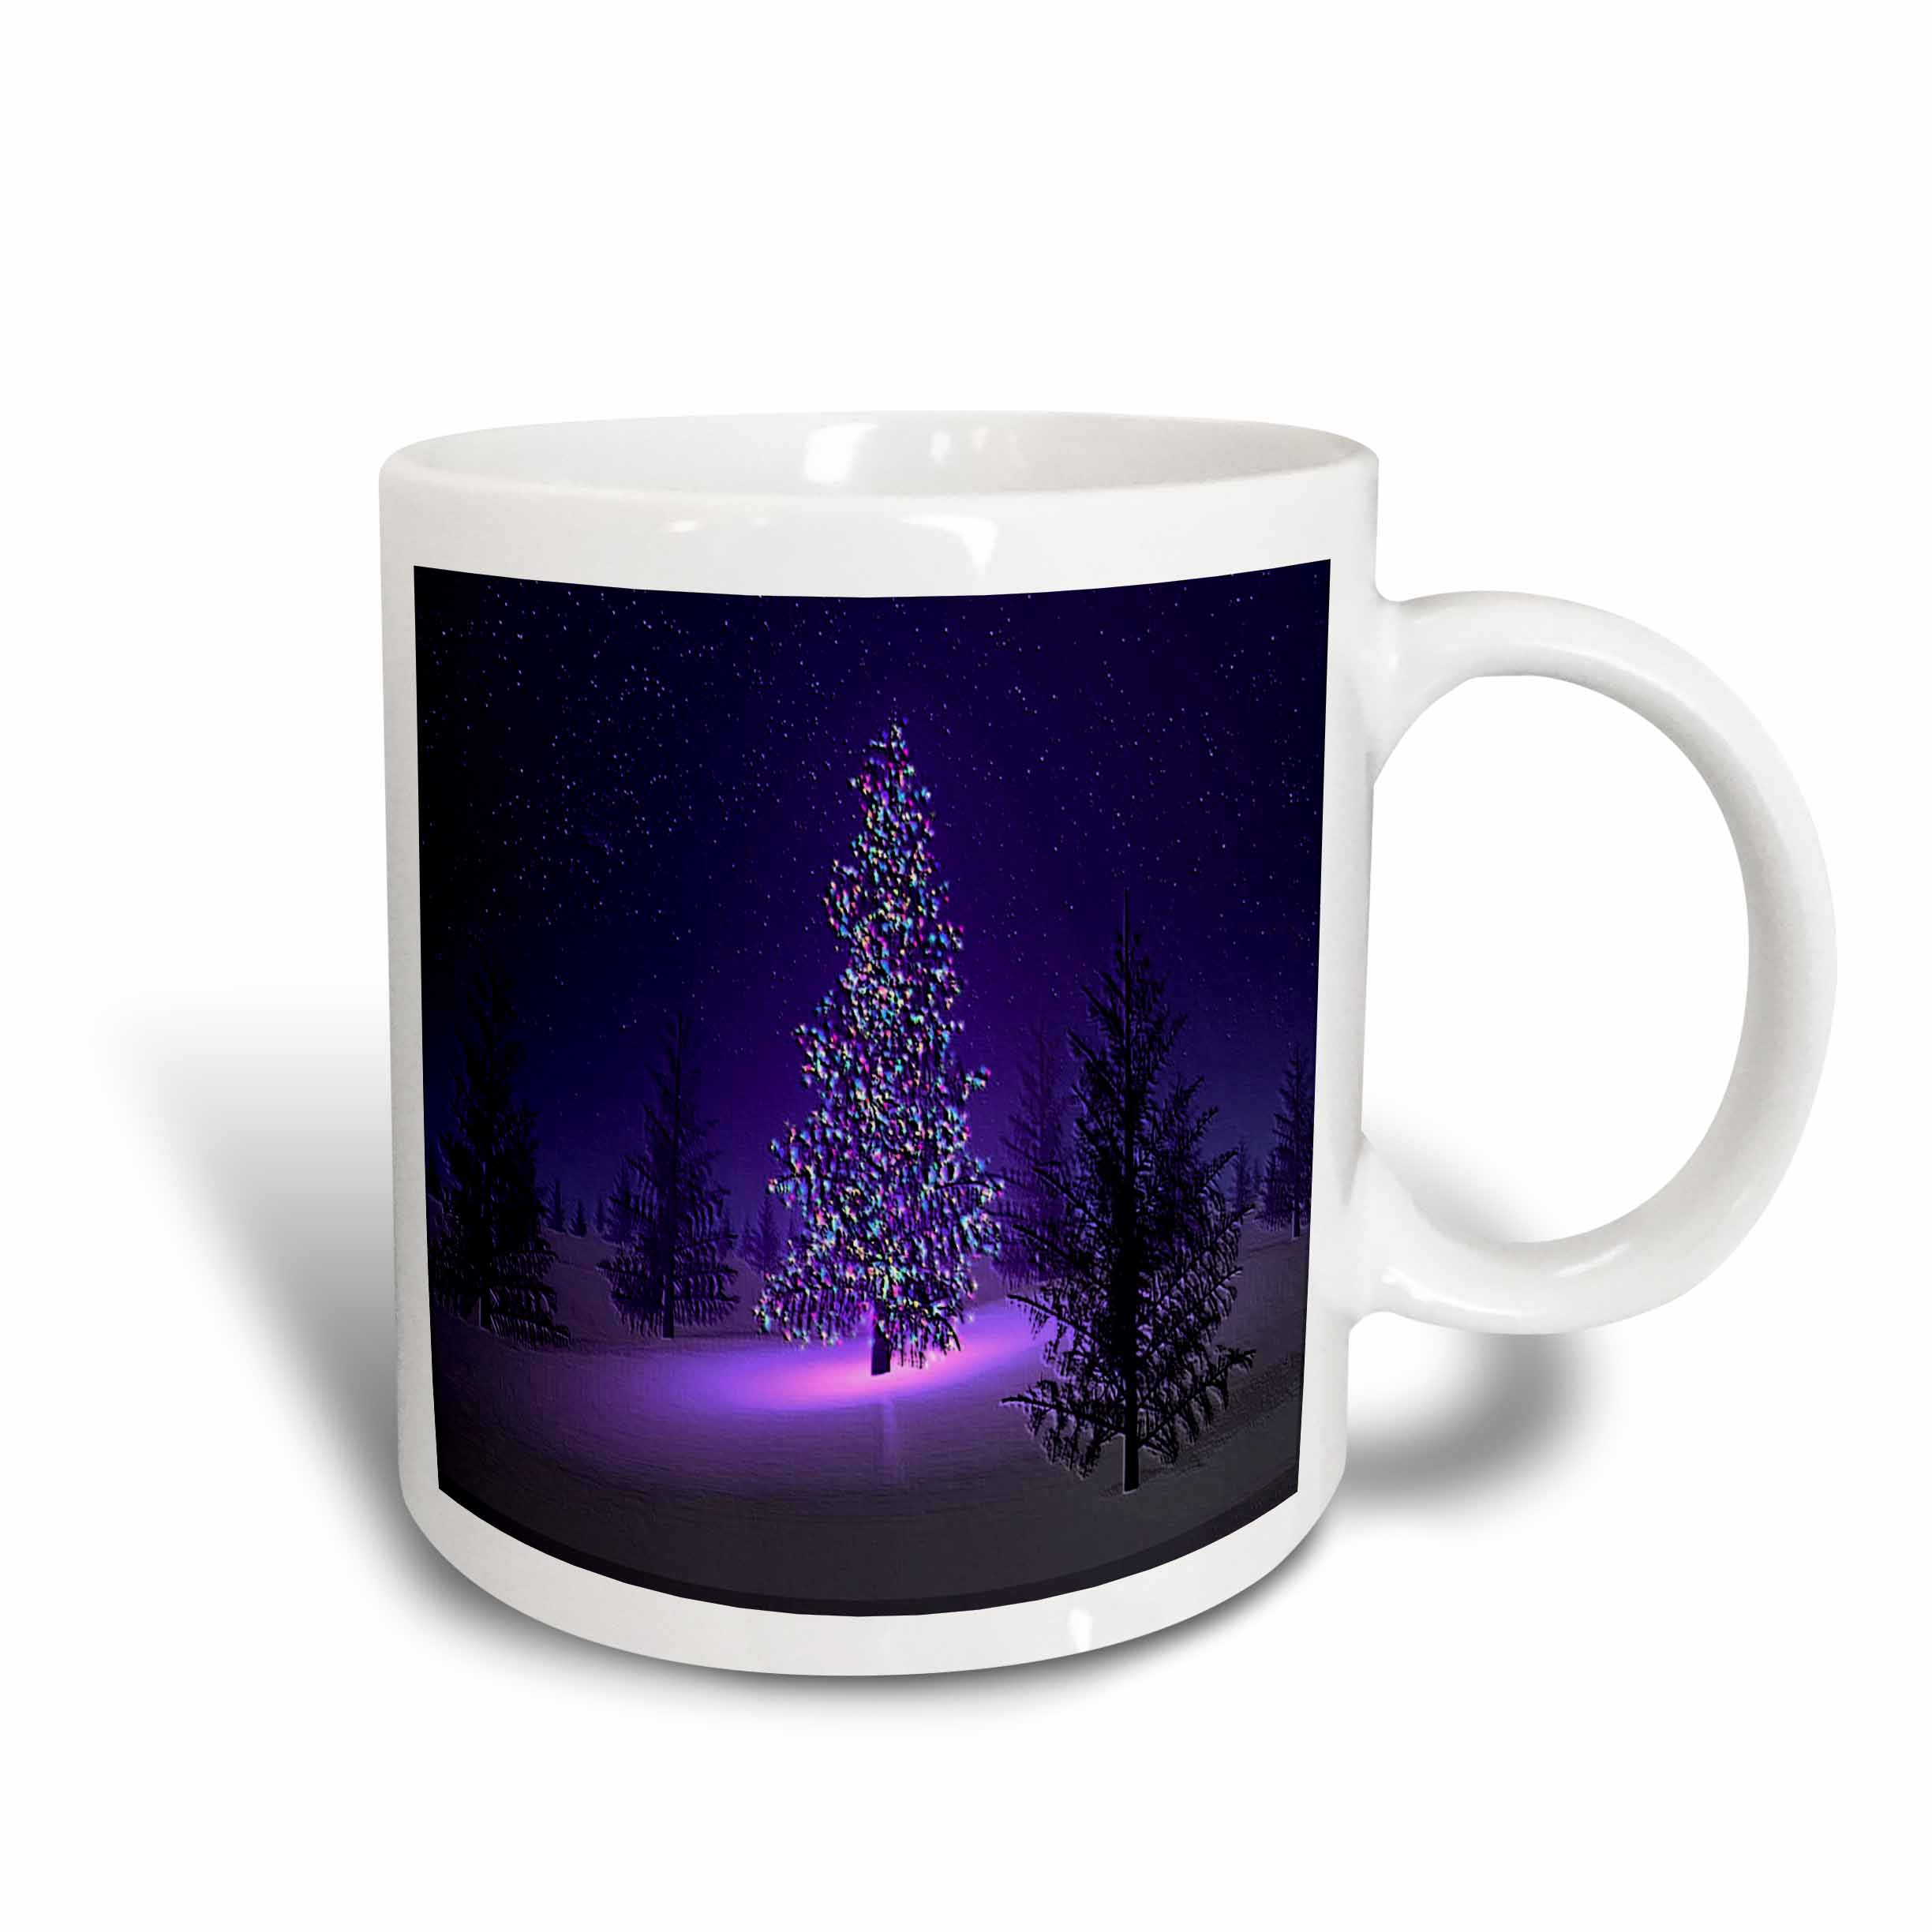 3dRose Lets Have A Purple Christmas, Ceramic Mug, 15-ounce